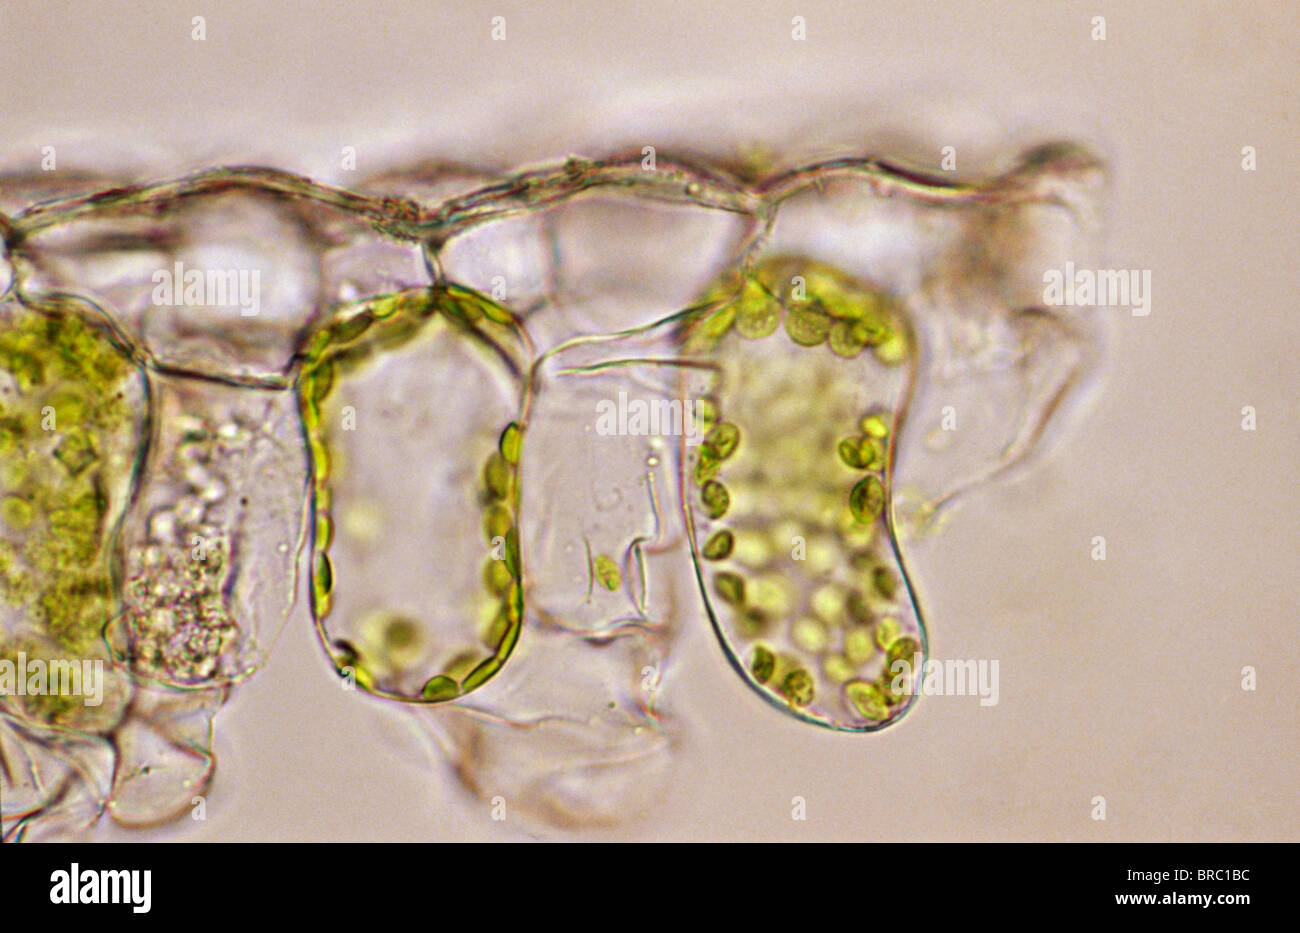 Light Micrograph (LM) of a plant cell chloroplasts, the site where photosynthesis takes place - Stock Image